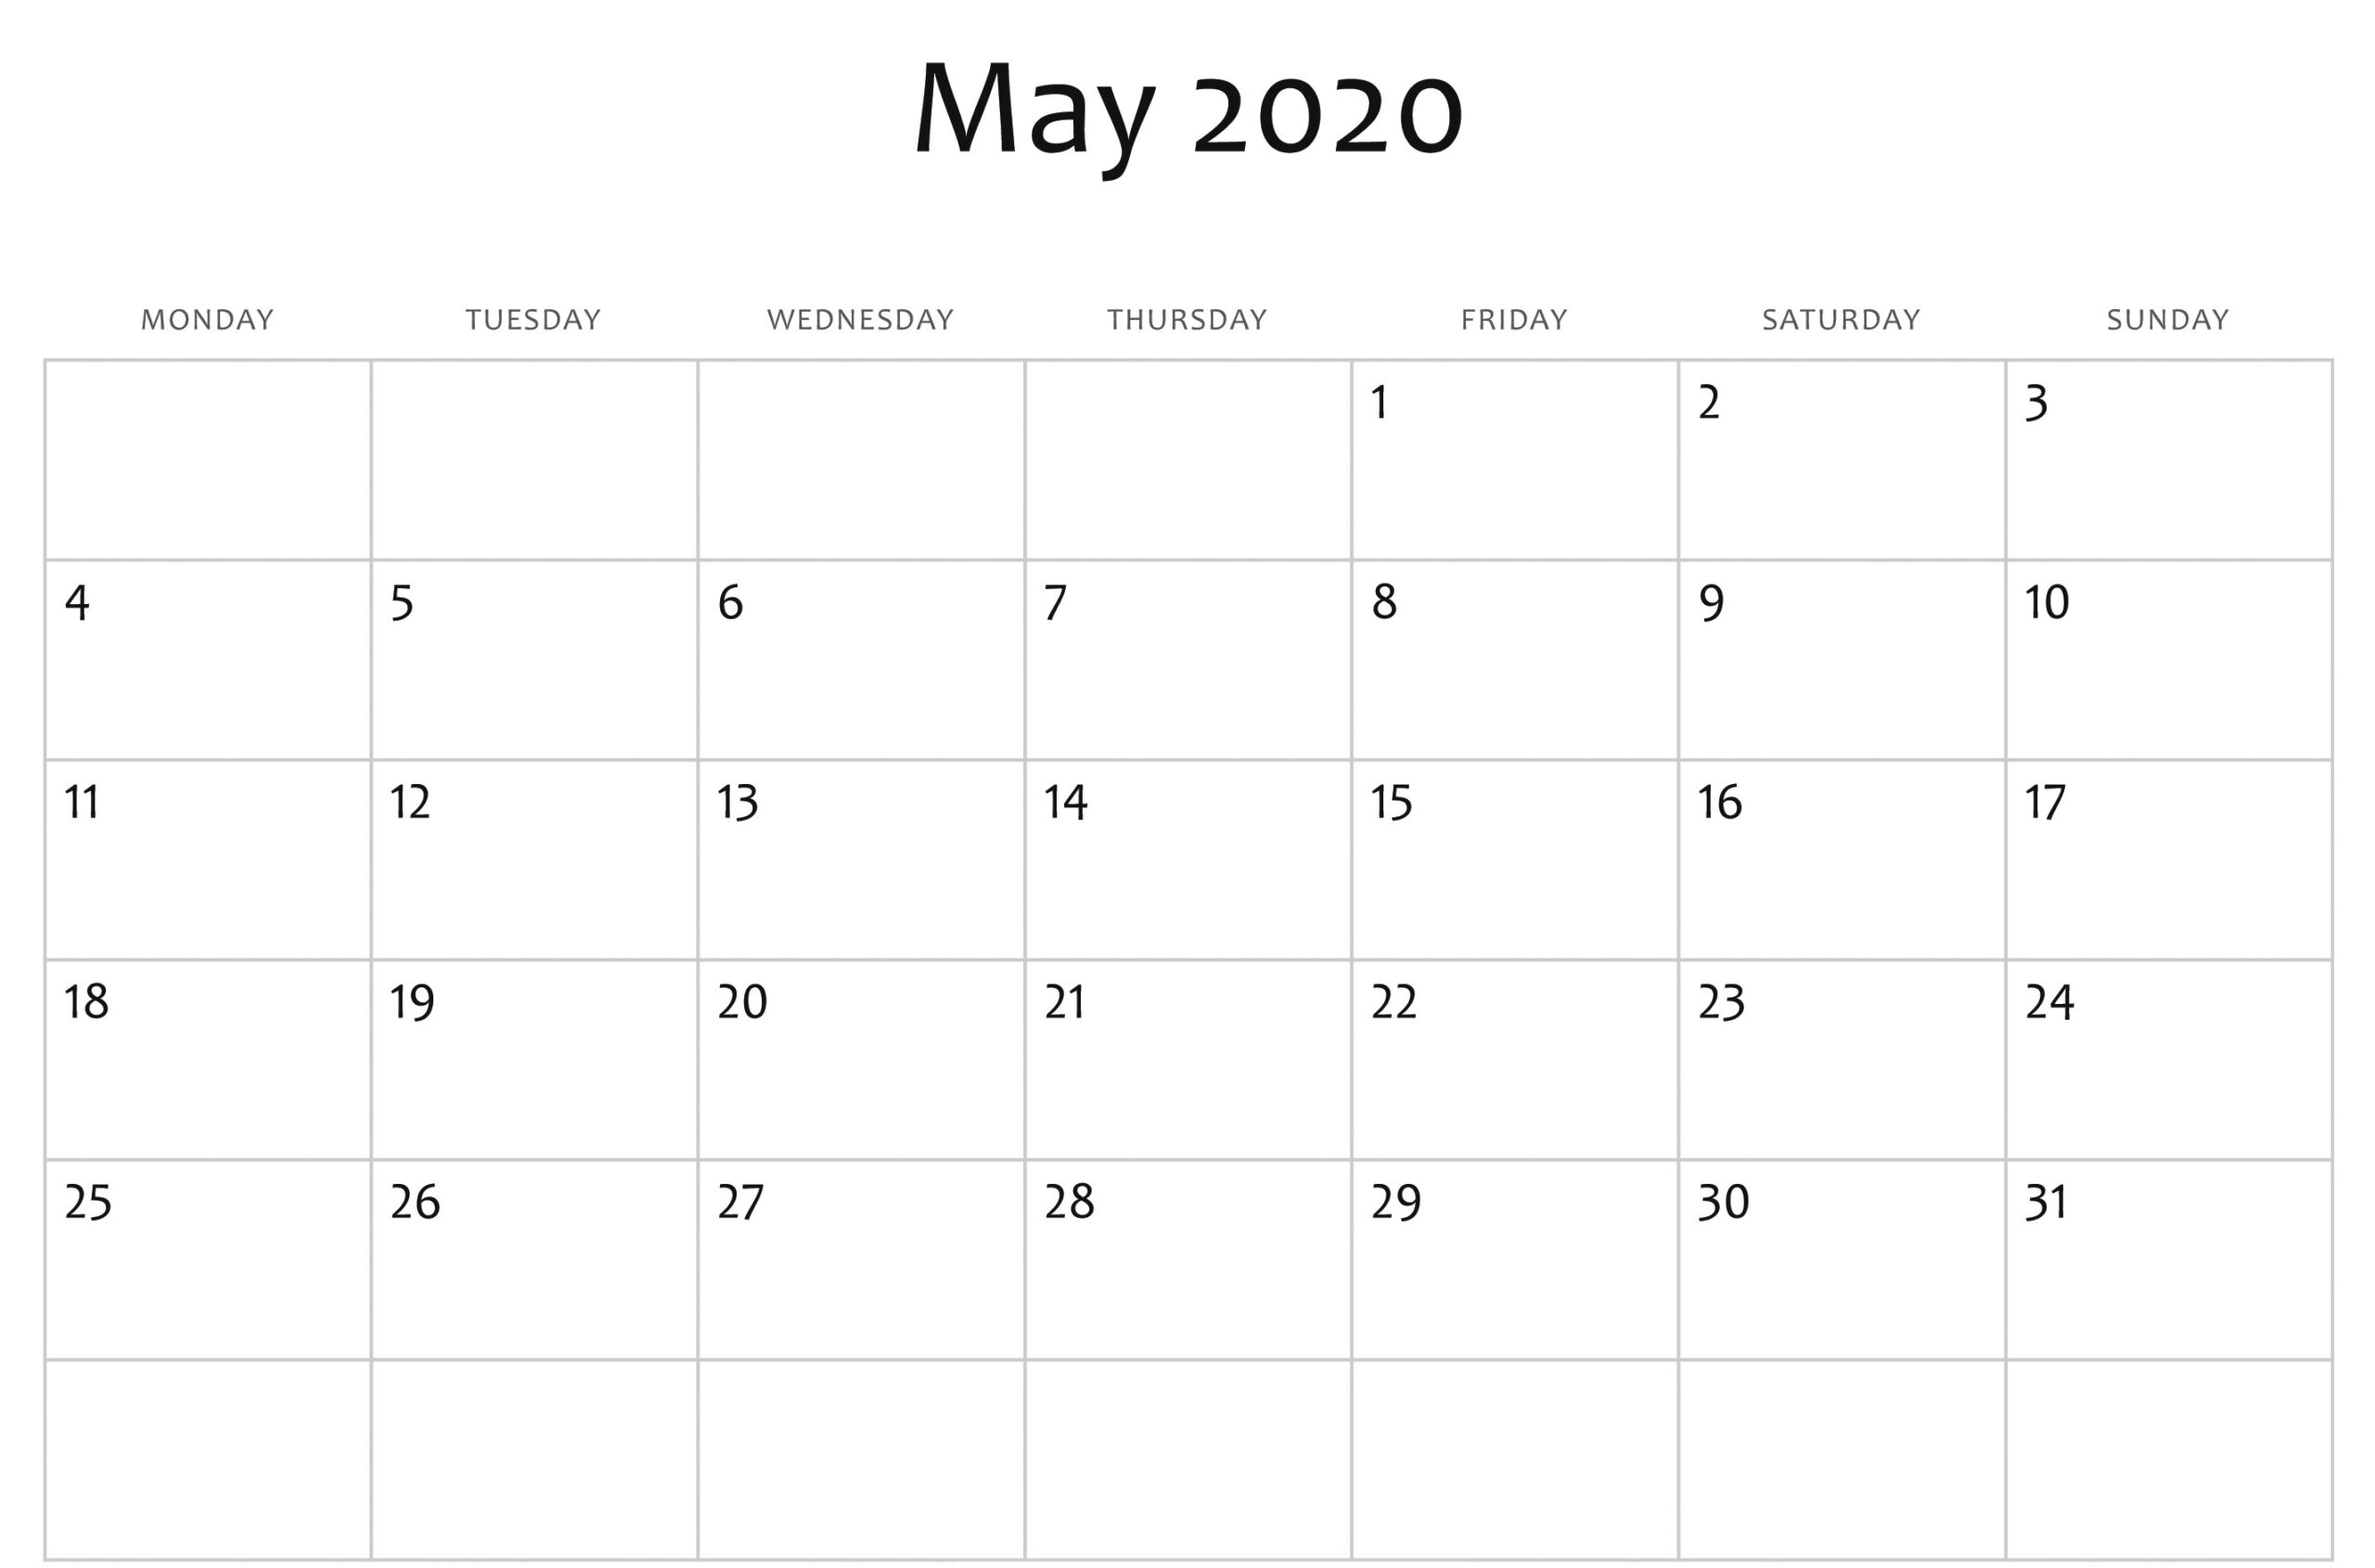 Awesome May 2020 Calendar Pdf, Word, Excel Template